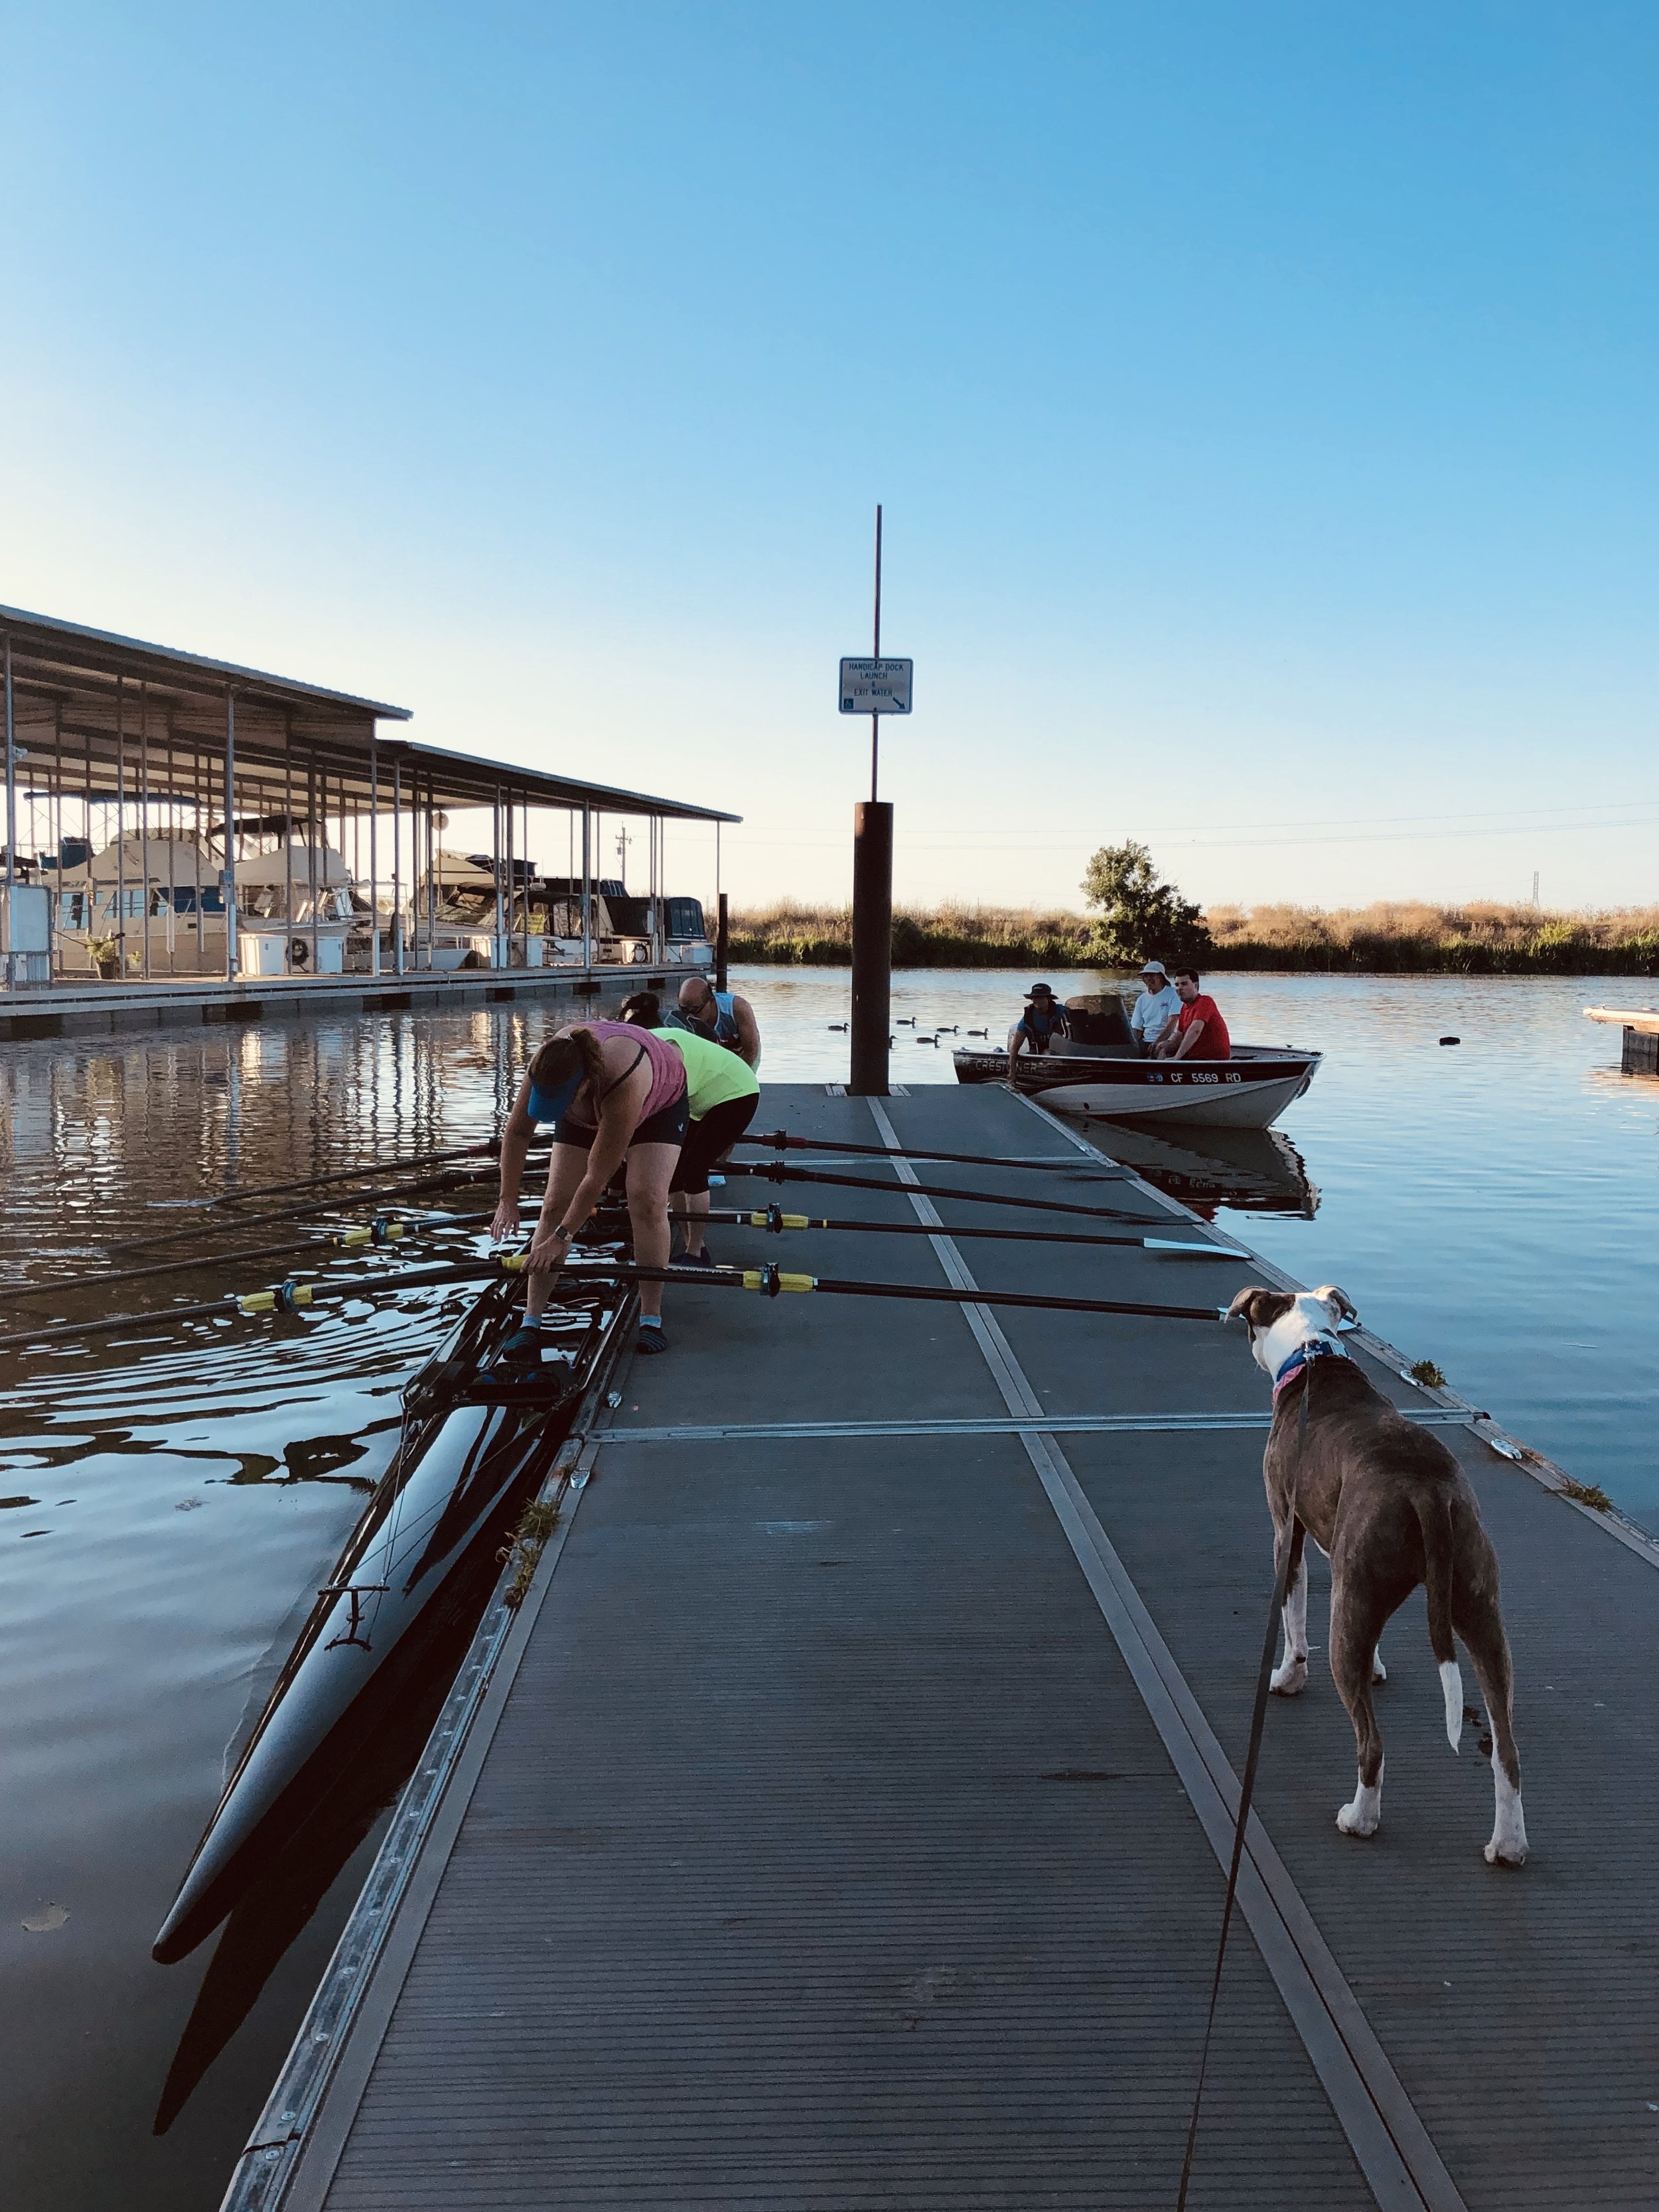 Dulli observing the athletes of Delta Sculling Center as they climb into their brand new quad one evening in July at RiverPoint Landing Marina.